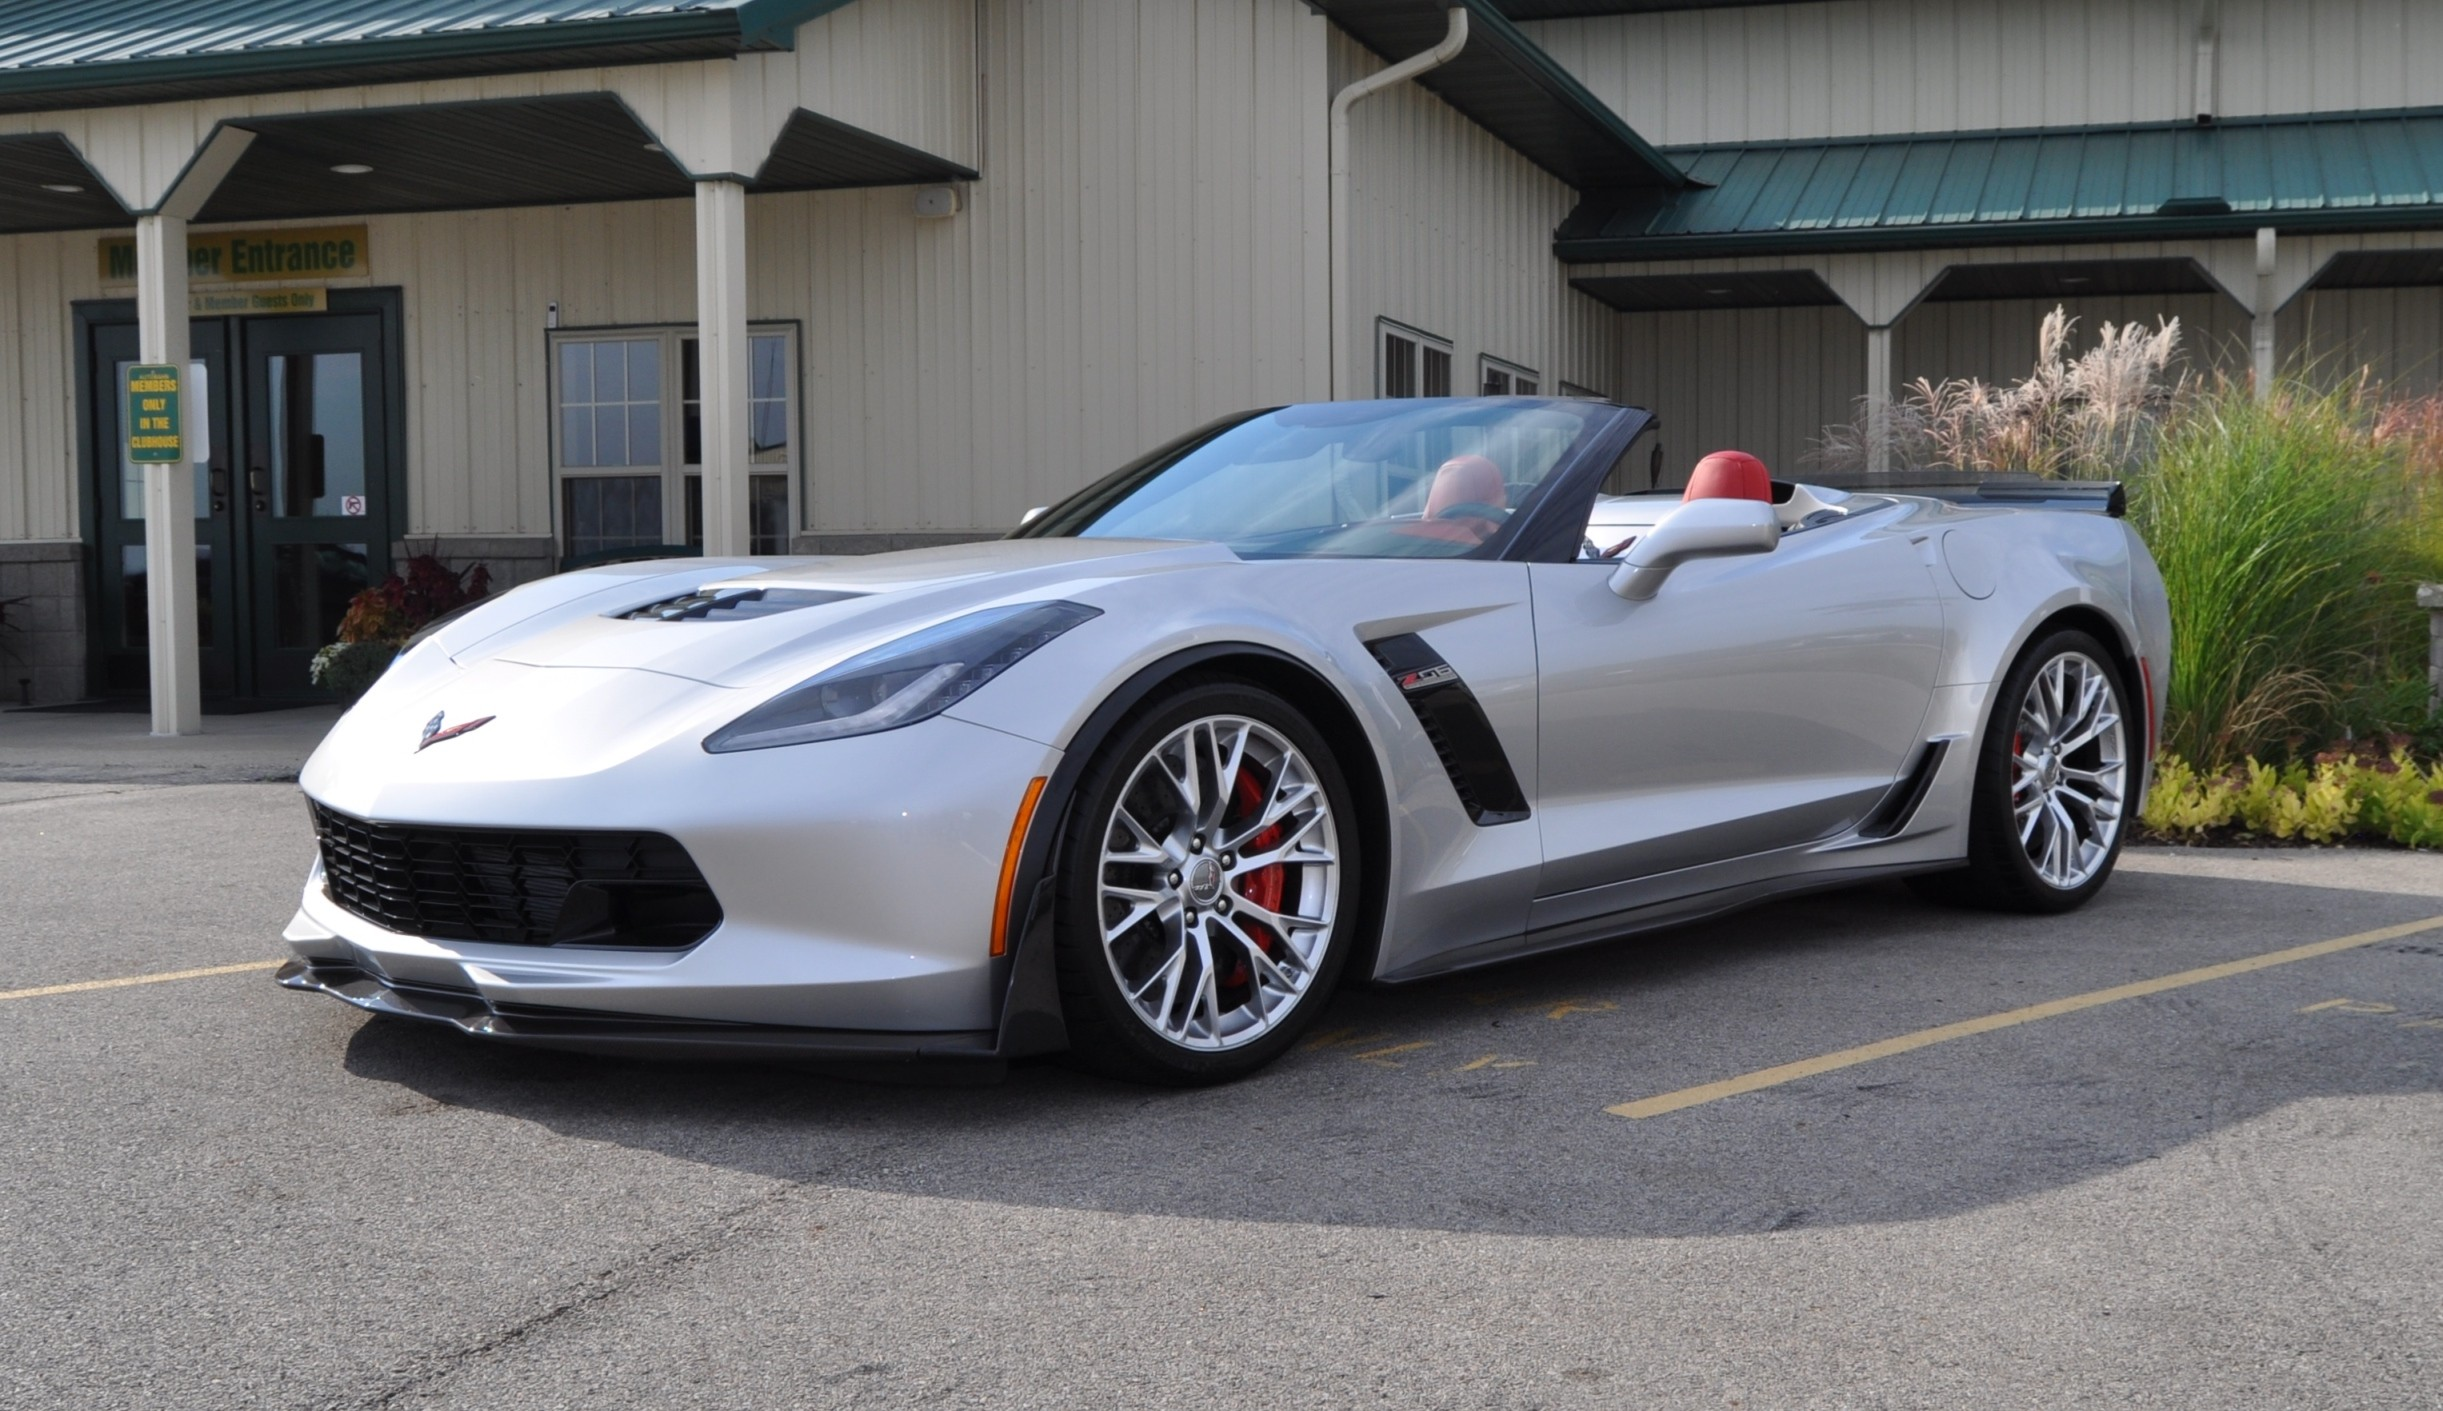 2015 chevrolet corvette z06 automatic z06 cab in 50 all new photos with sir tadge. Black Bedroom Furniture Sets. Home Design Ideas